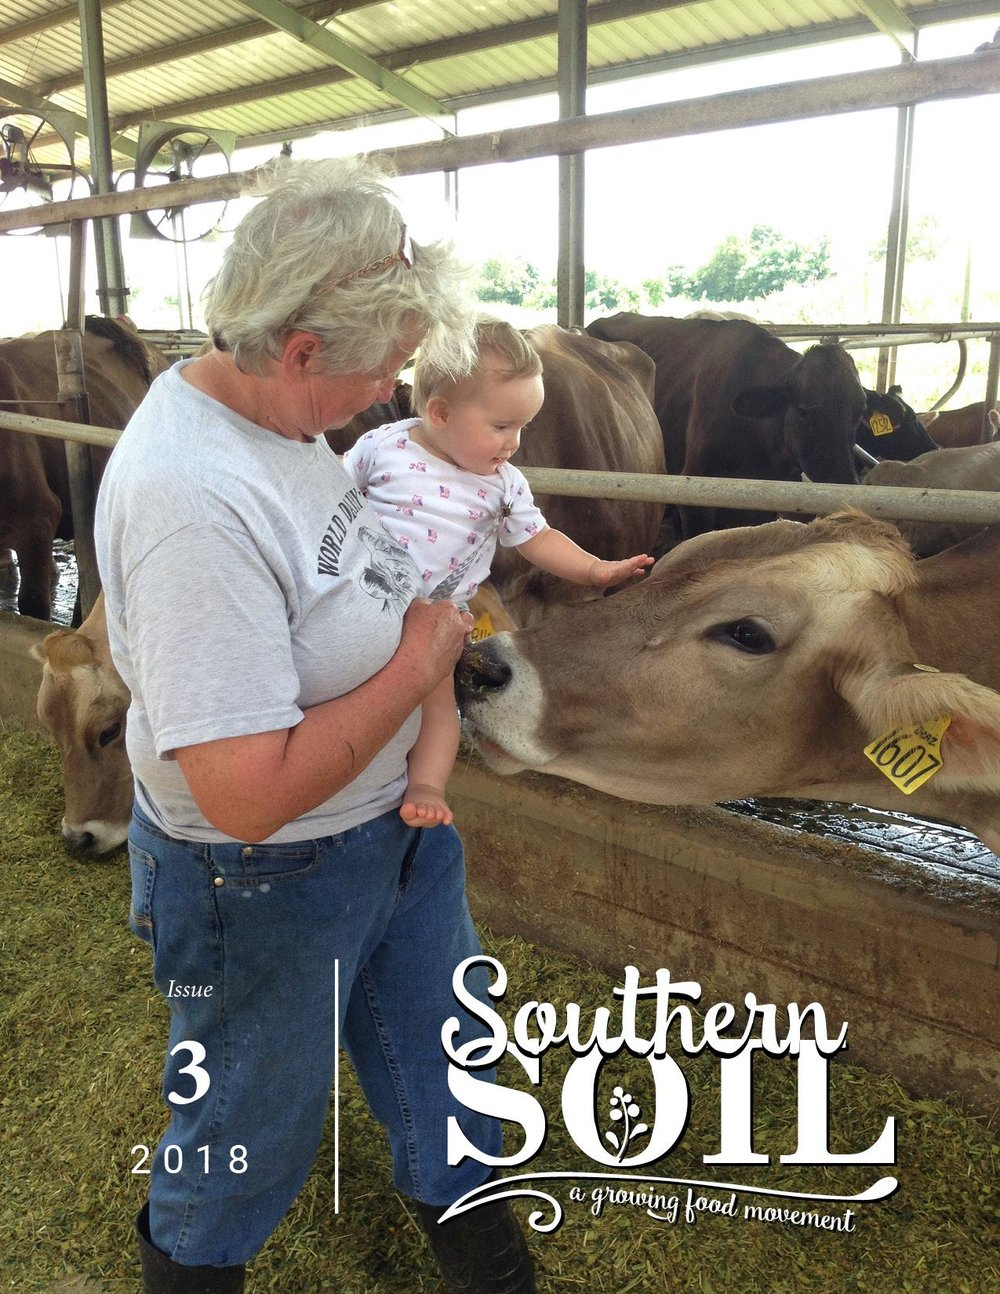 Issue #3 ofSouthern Soil - This issue highlights kids and agriculture and the wonderful lessons about life, the natural world, work and relationships the farm or garden can teach. Get to know a bit about the families behind Byne Blueberry Farmsand Southern Swiss Dairy, LLC. Did you know that Hunter Cattle Company offers educational tours for kids and adults alike? Take a peek at how Bethesda Academy uses its farm and garden to teach tomorrow's leaders important life lessons. Dig in deep as the conversation continues about our local food system, this time with Jeb Bush Director of Forsyth Farmers' Market. Thank you to Midnight Run Distillery LLC. for advertising with us and helping to keep these important conversations about our community going!